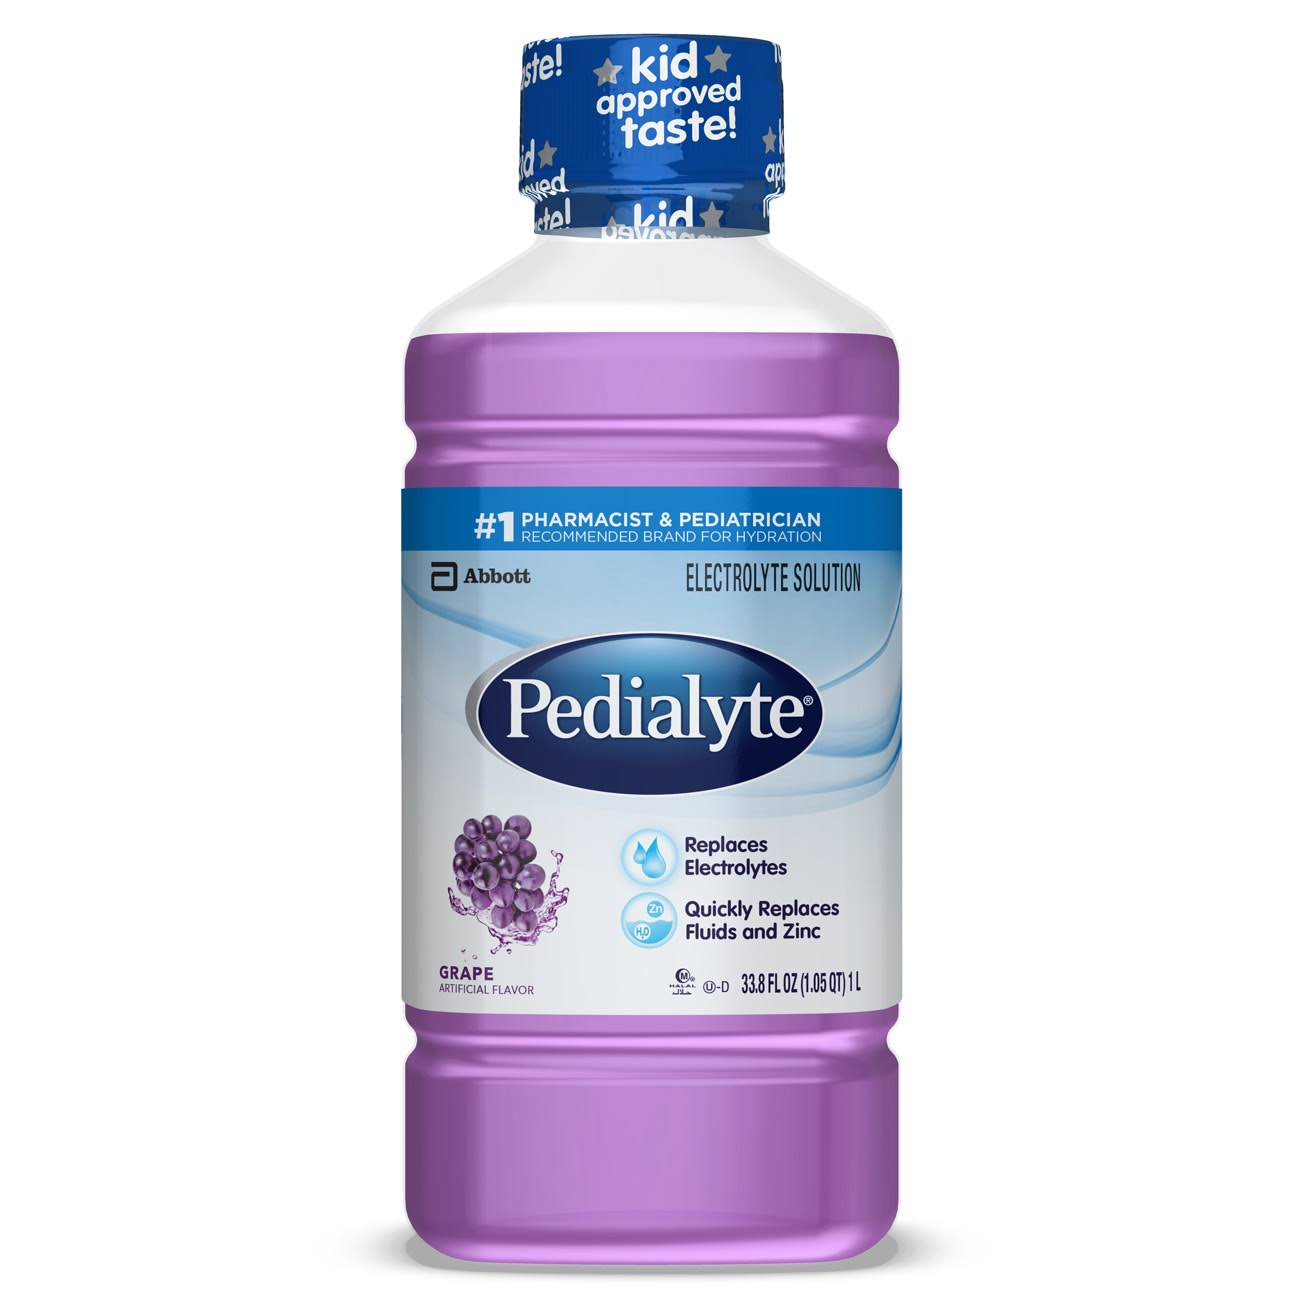 Abbott Pedialyte Grape Electrolyte Solution - 1.1qt, Grape